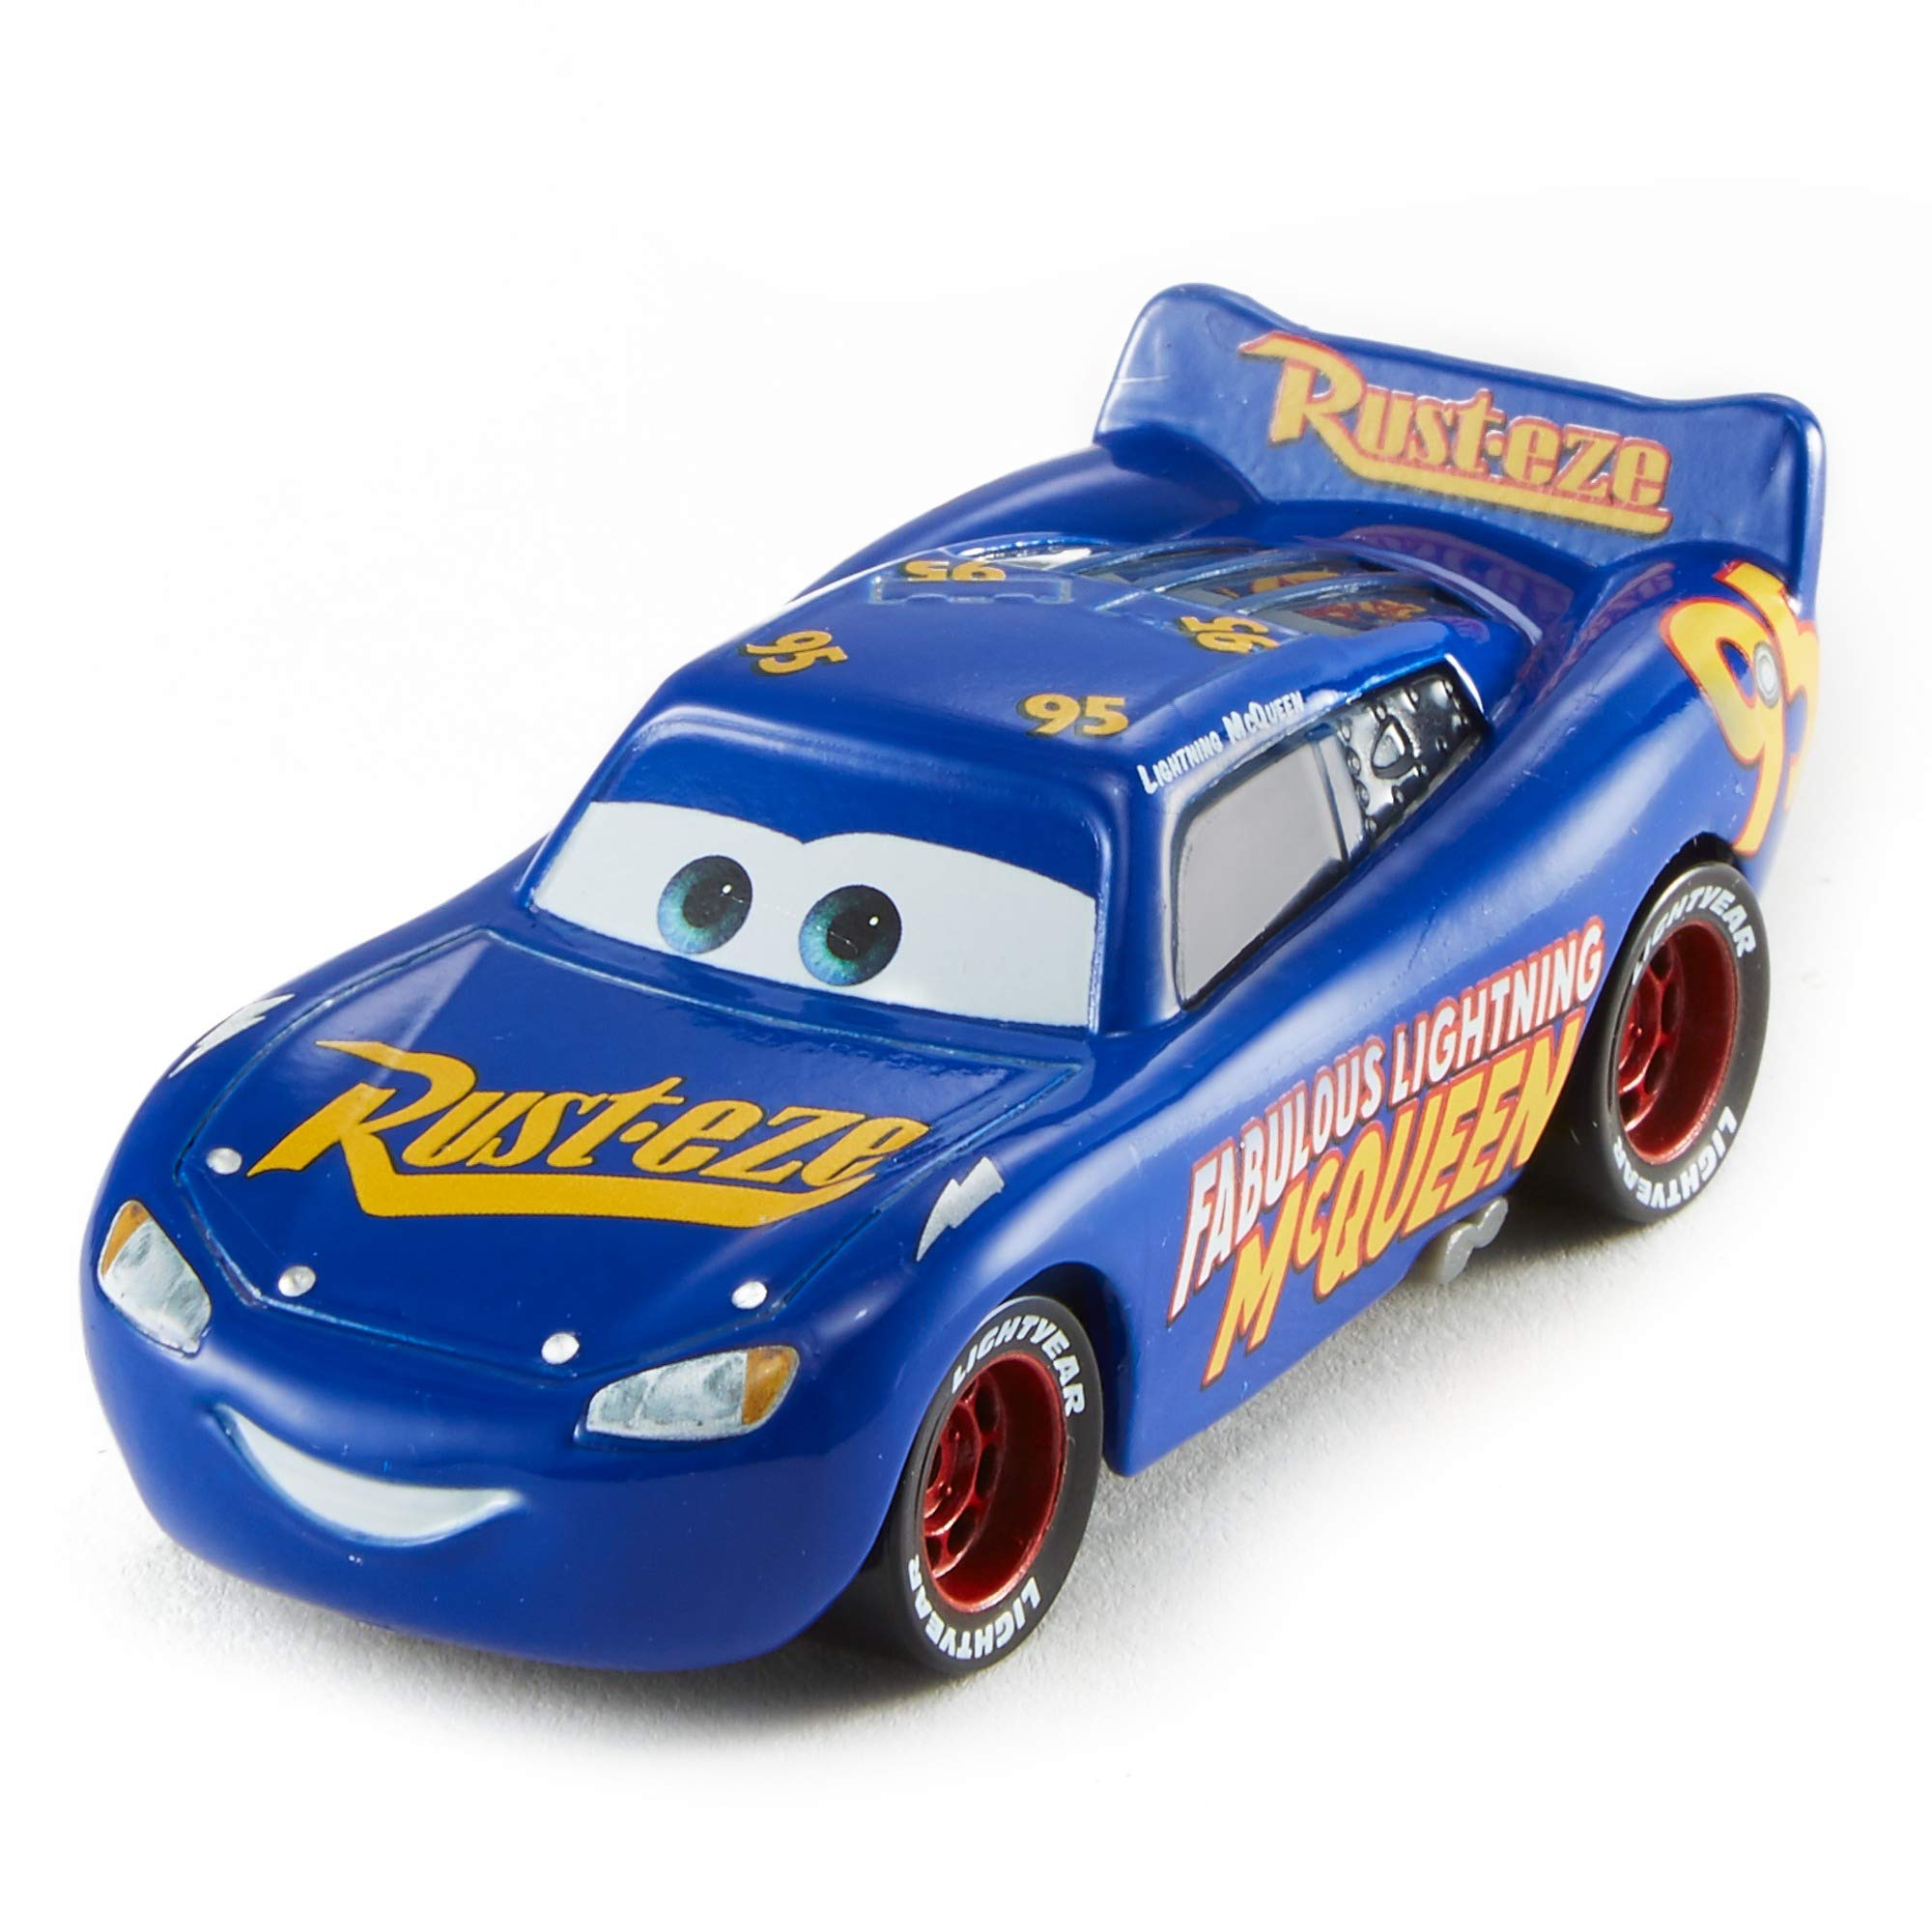 Disney Pixar Cars 3 Die-cast Fabulous Lightning McQueen Vehicle